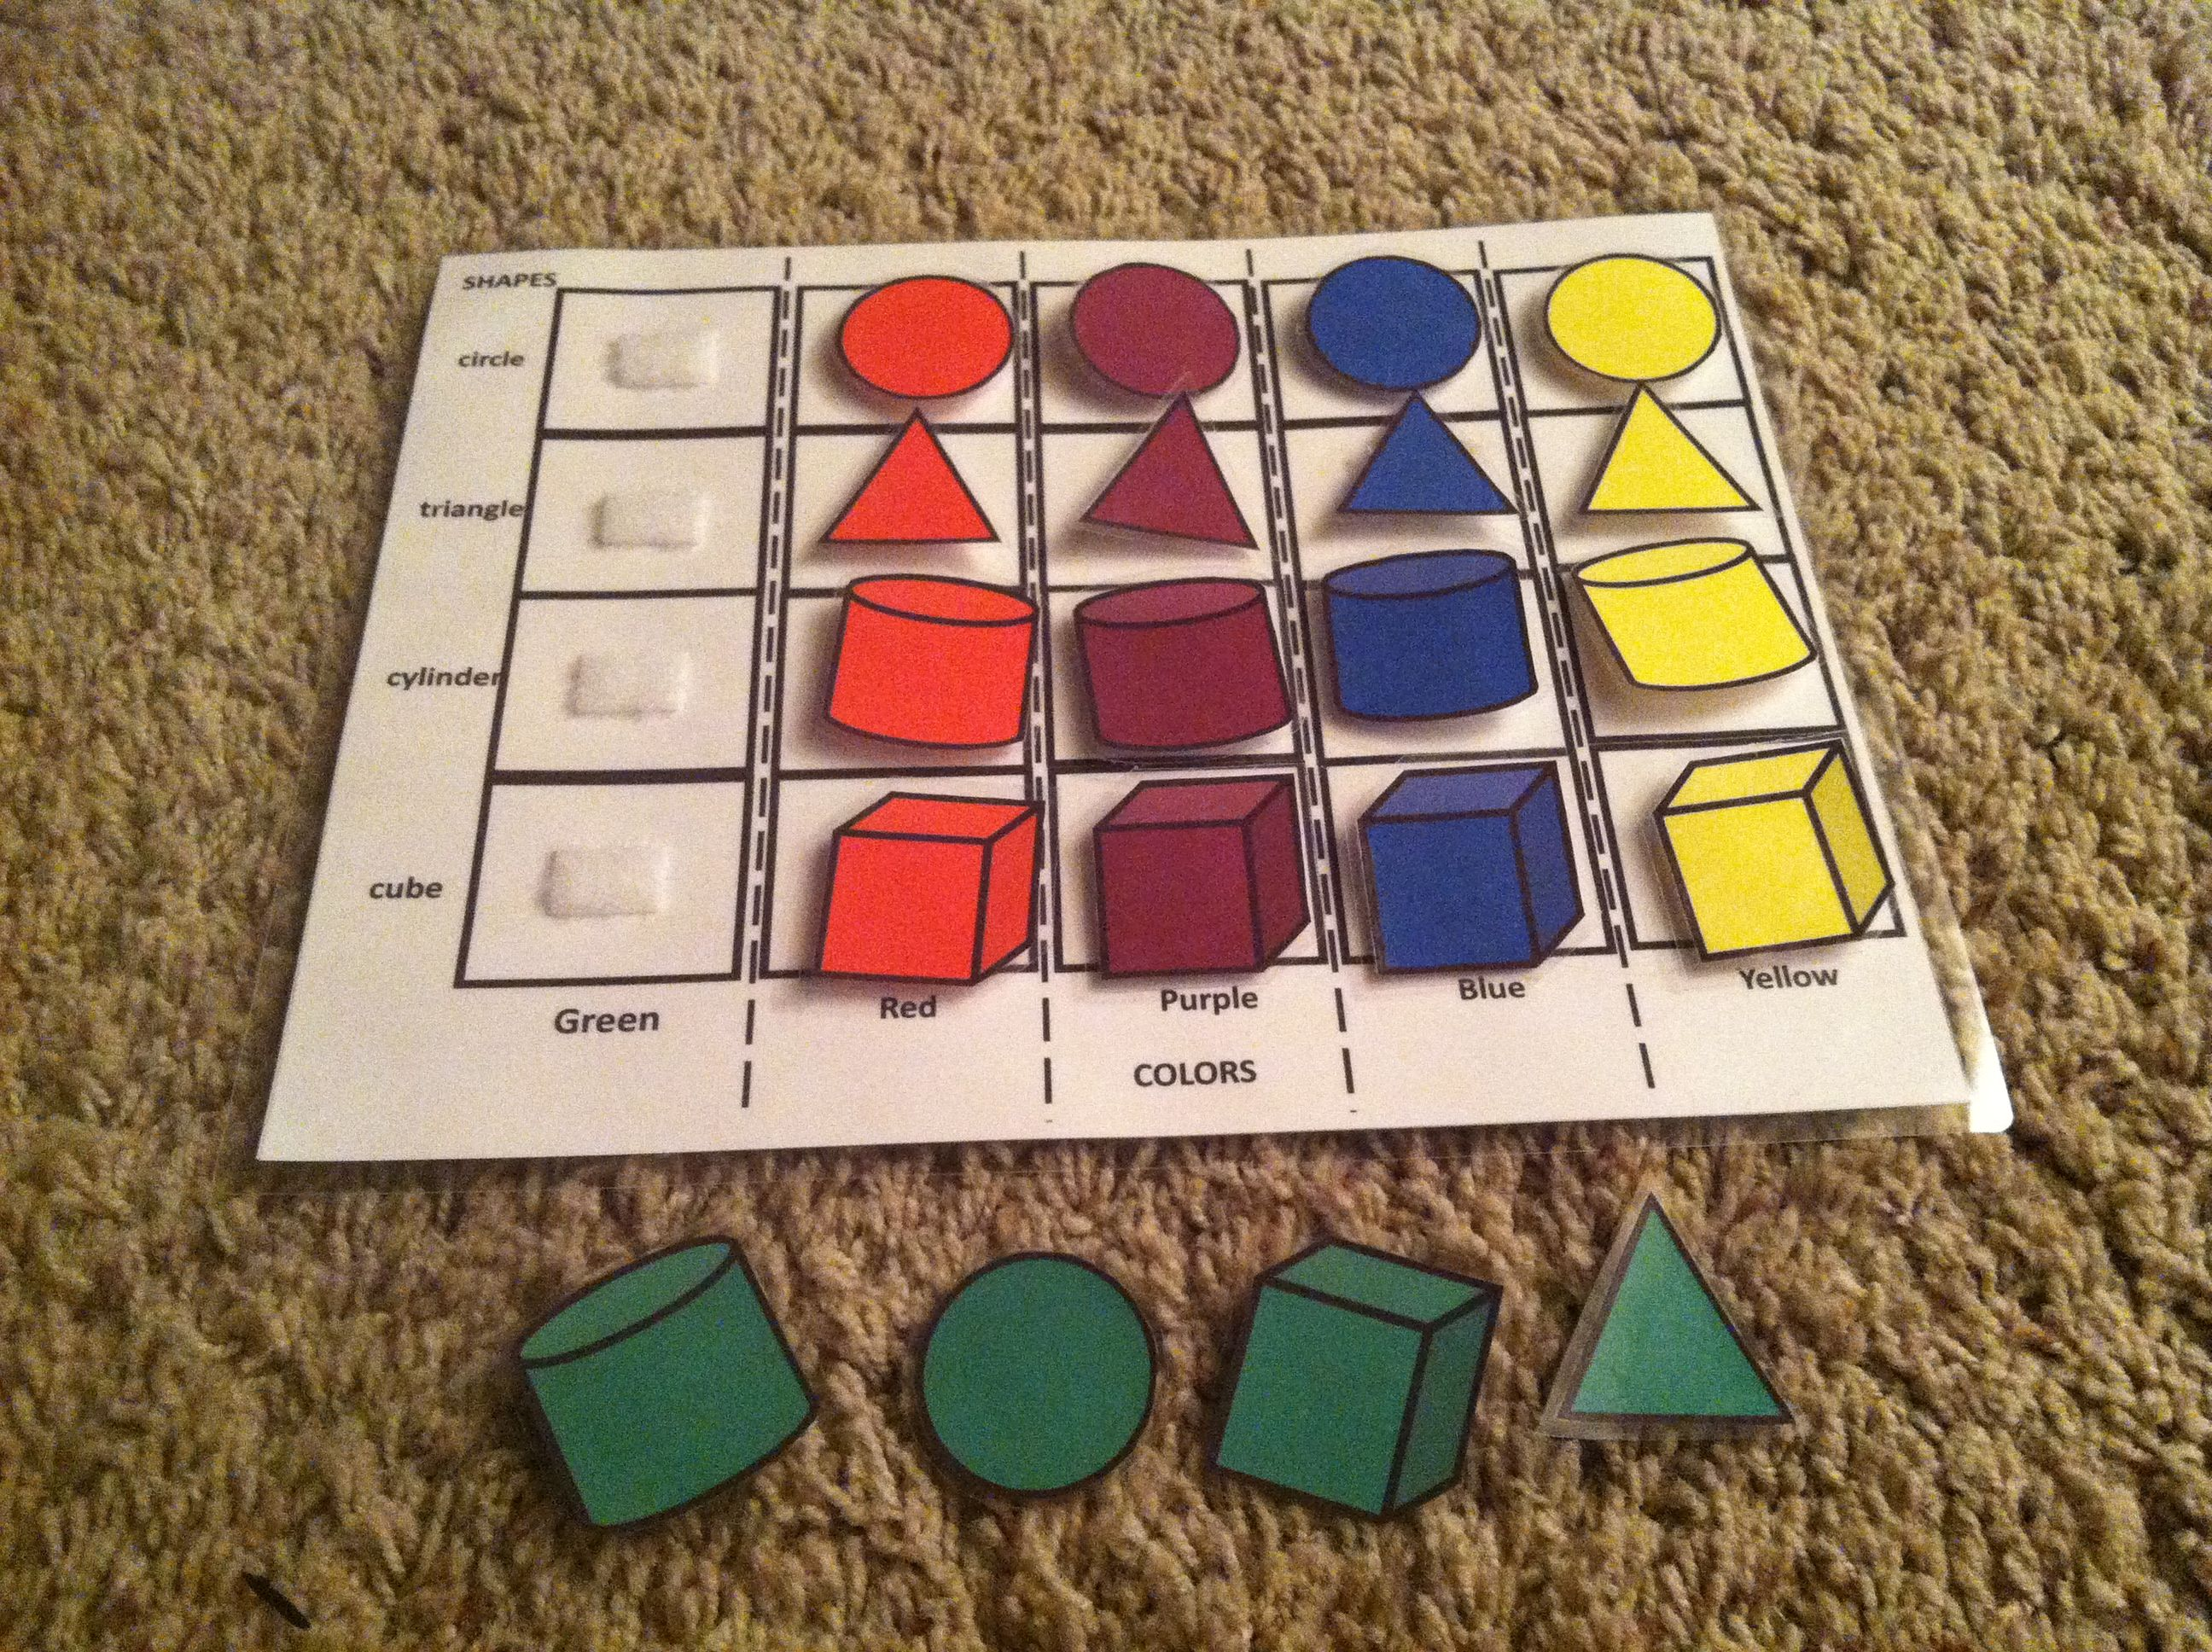 Sort Shapes On Chart By Color Circles Cylinders Cubes